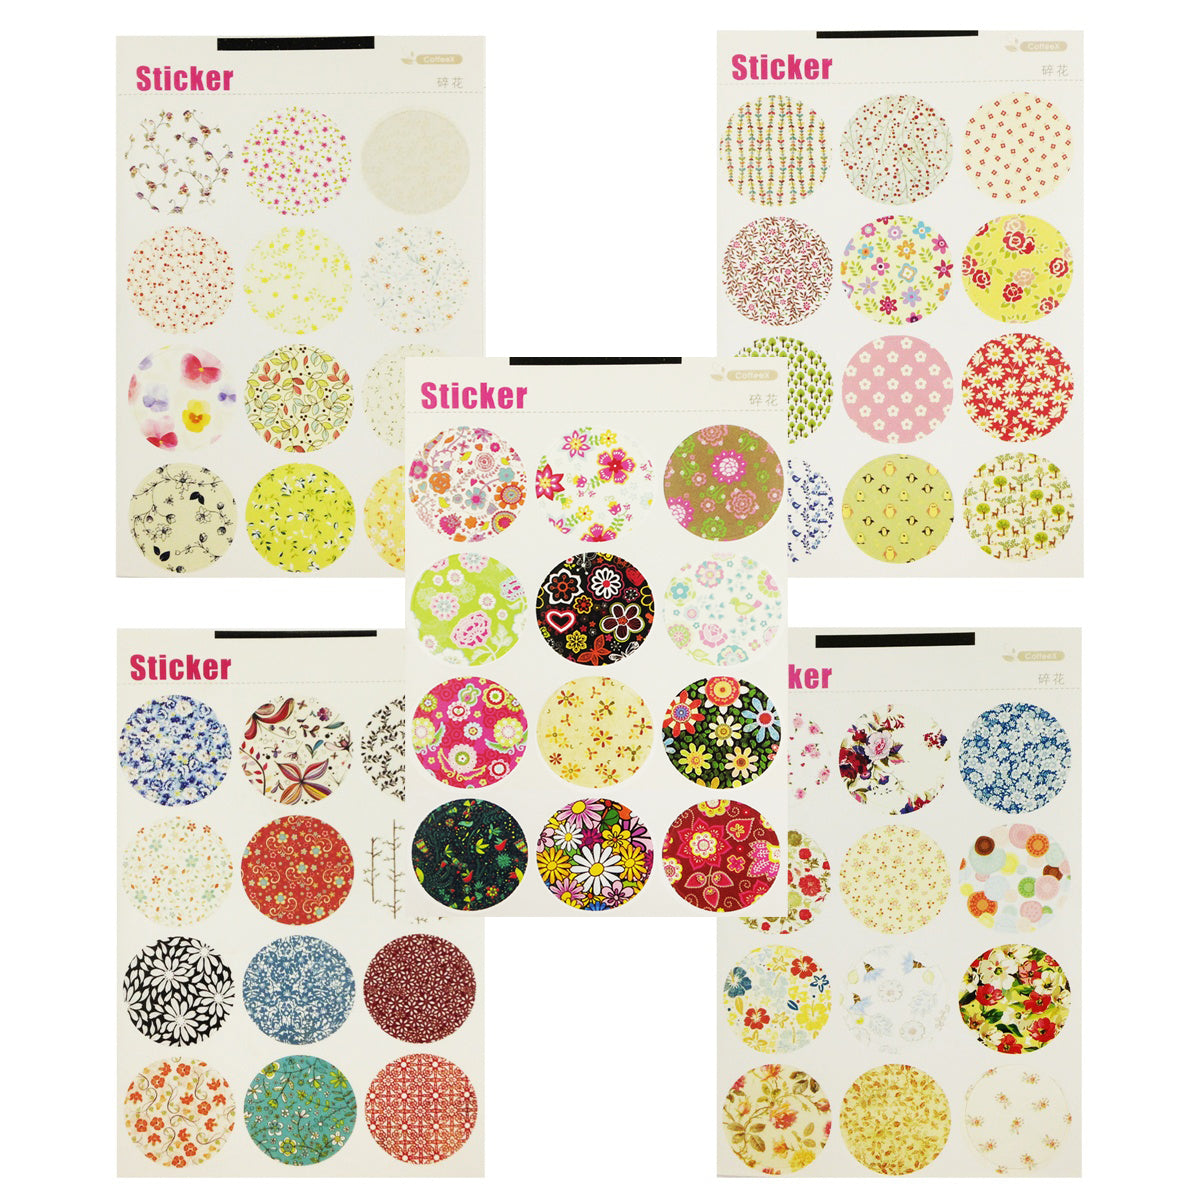 Wrapables Decorative Floral Pattern Sticker Set